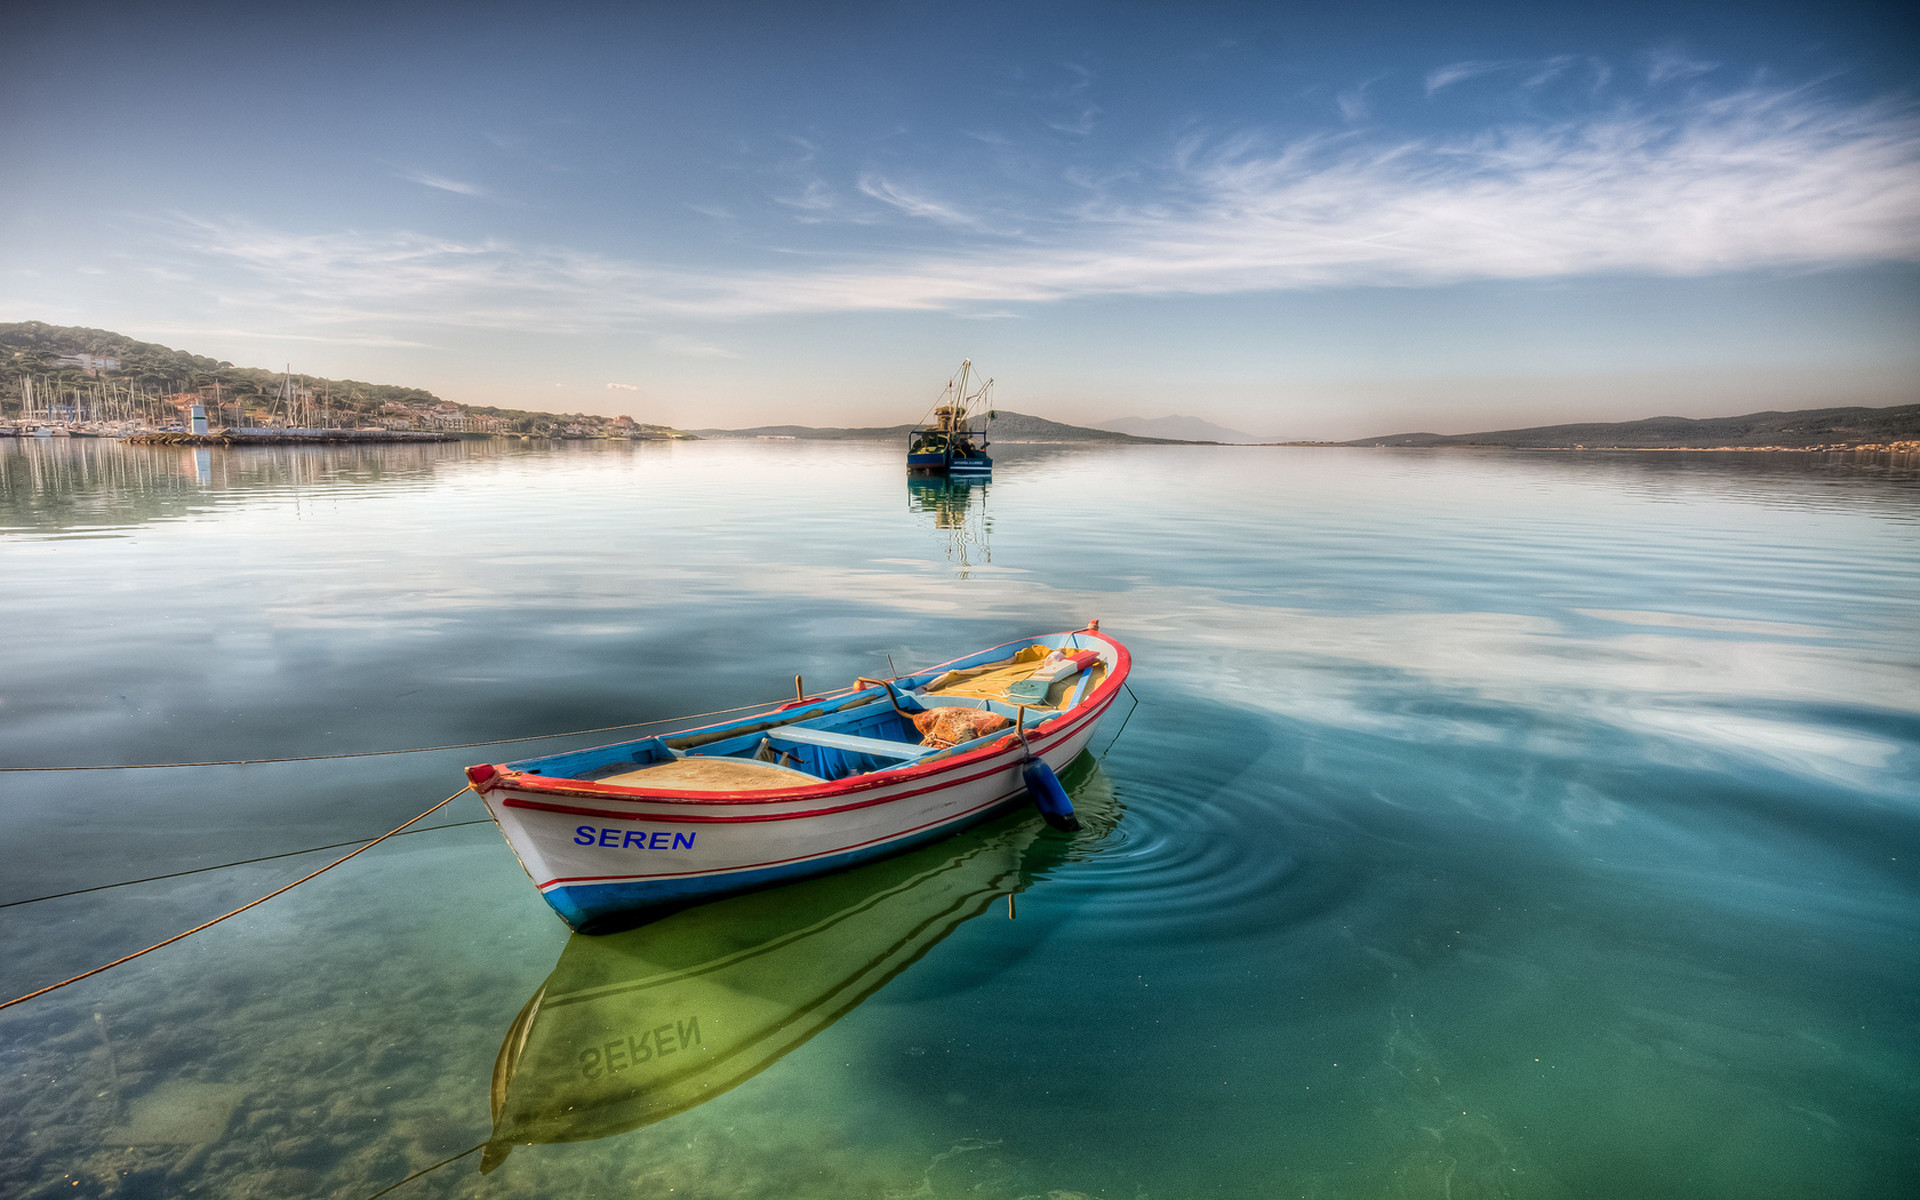 Boat named Seren 1920 x 1200 Water Photography 1920x1200